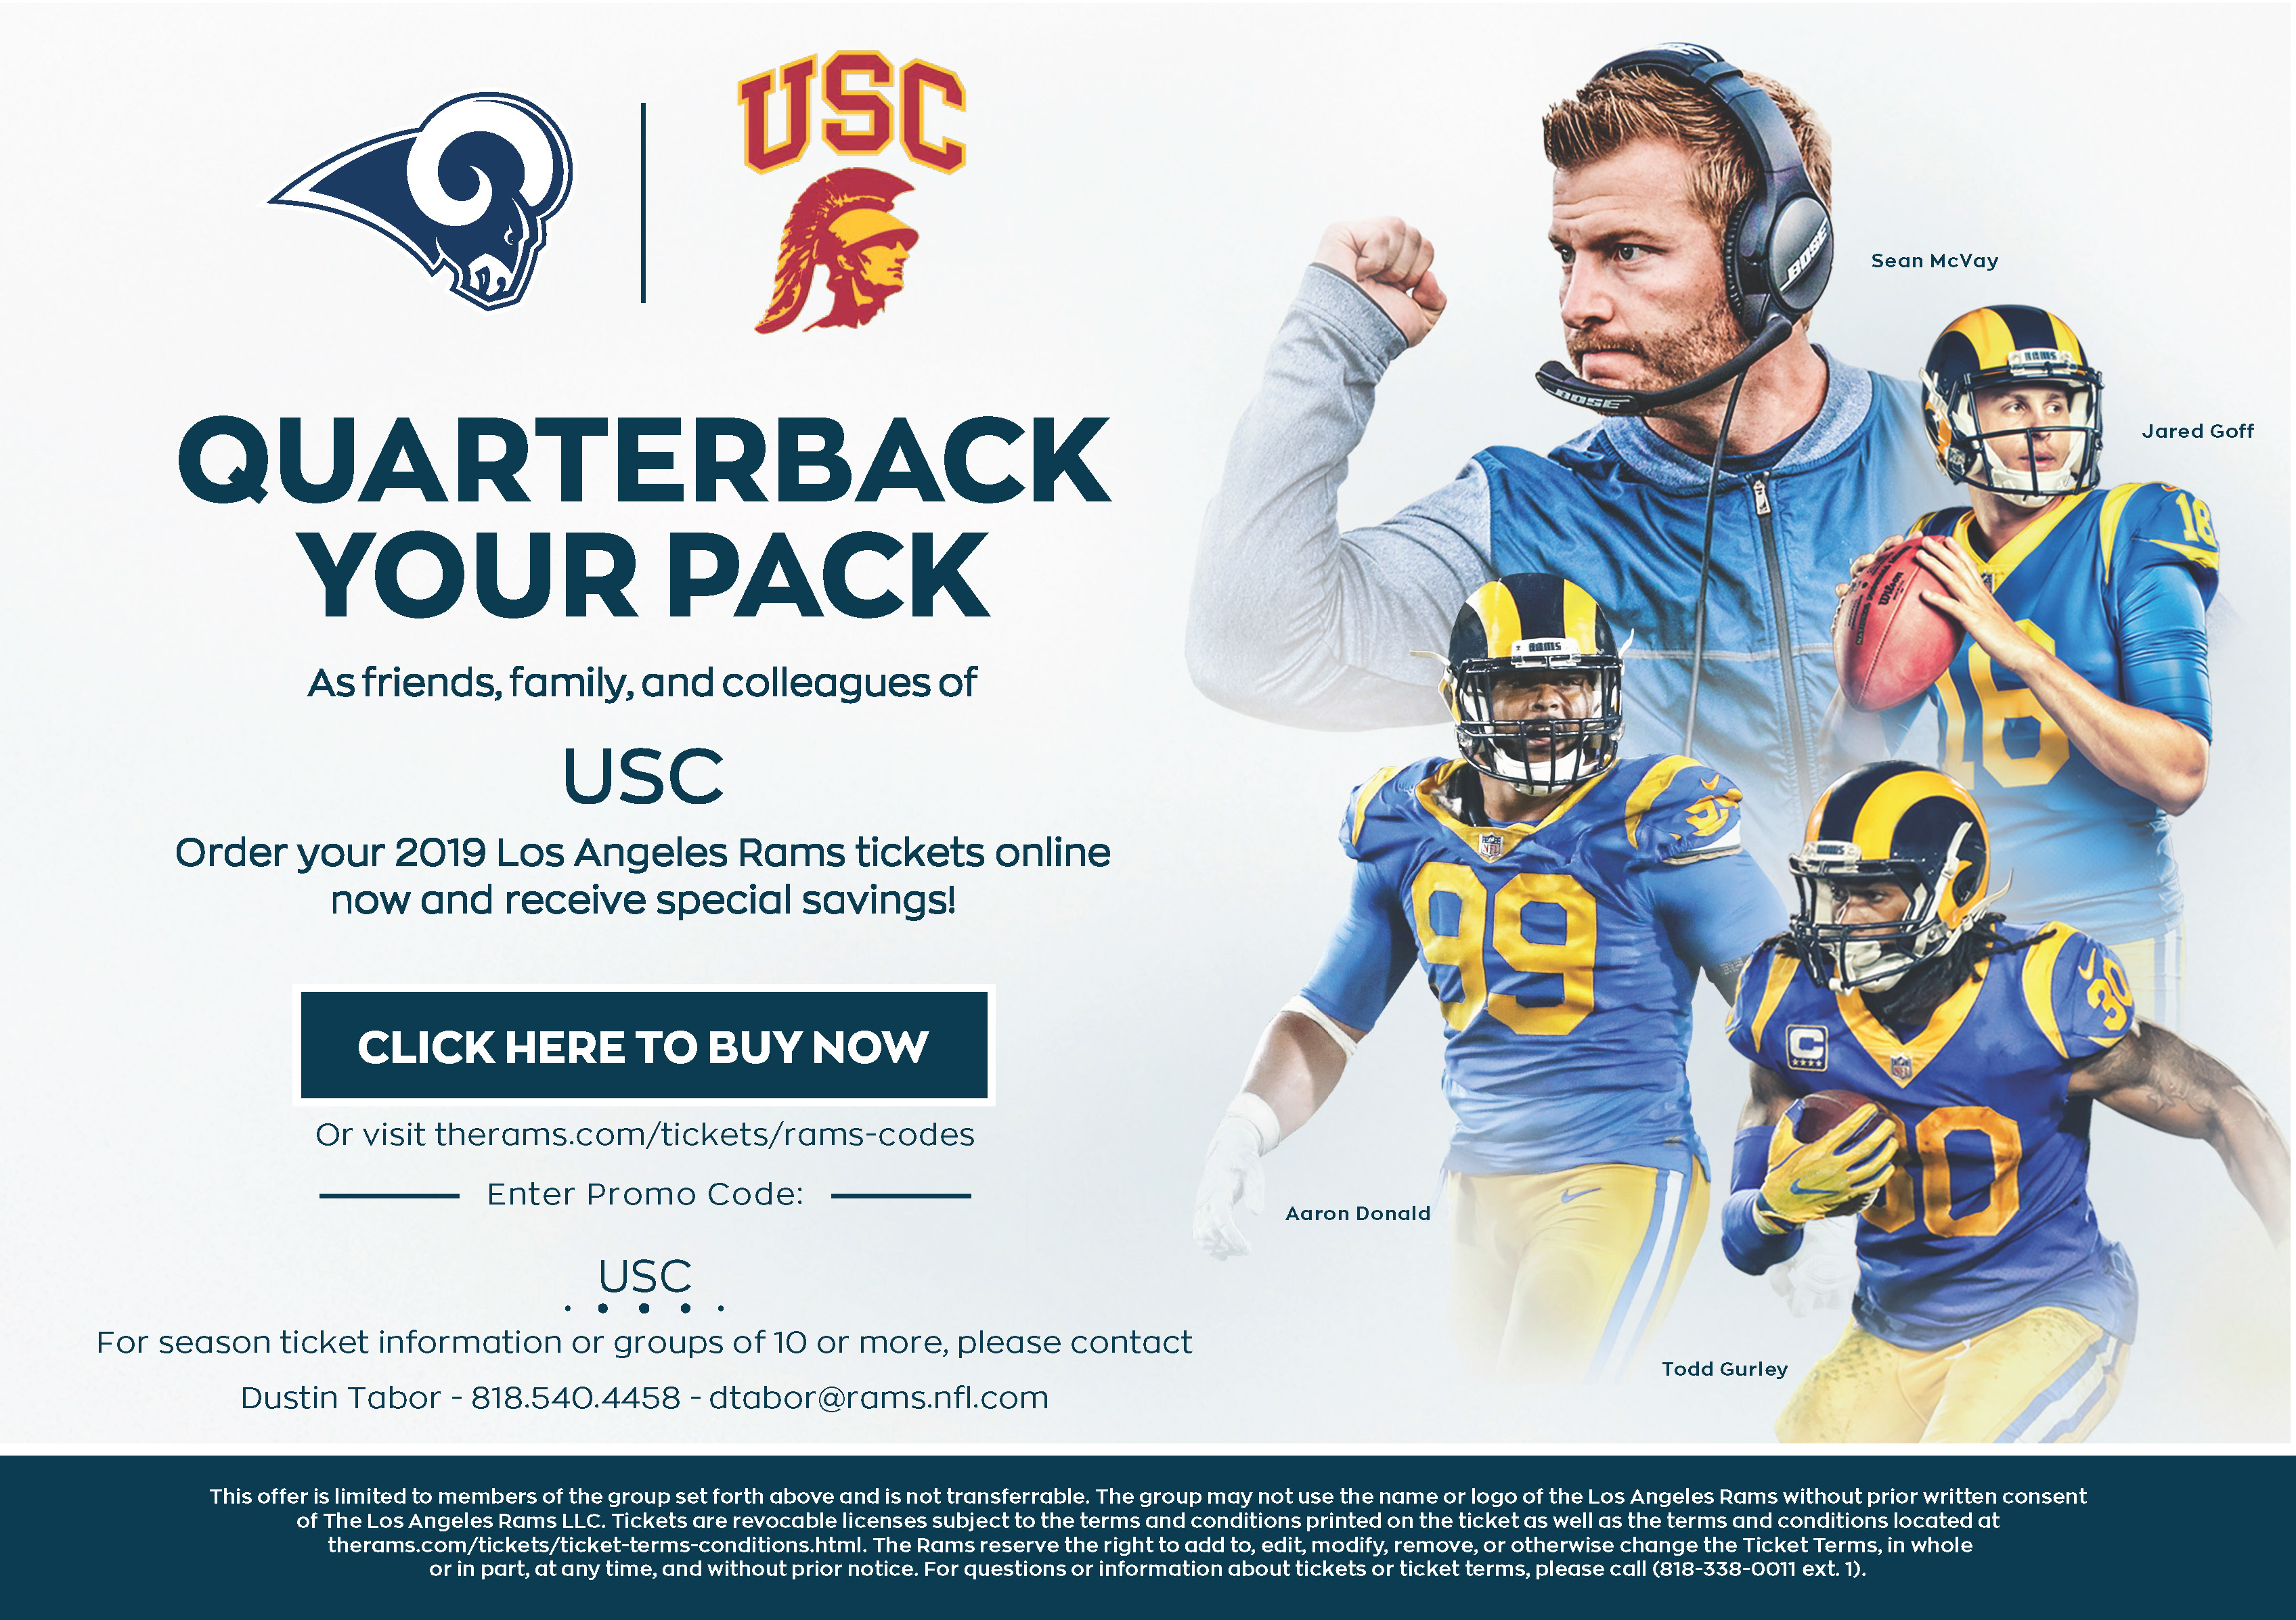 Discounted Rams Tickets For The Trojan Family Usc Employee